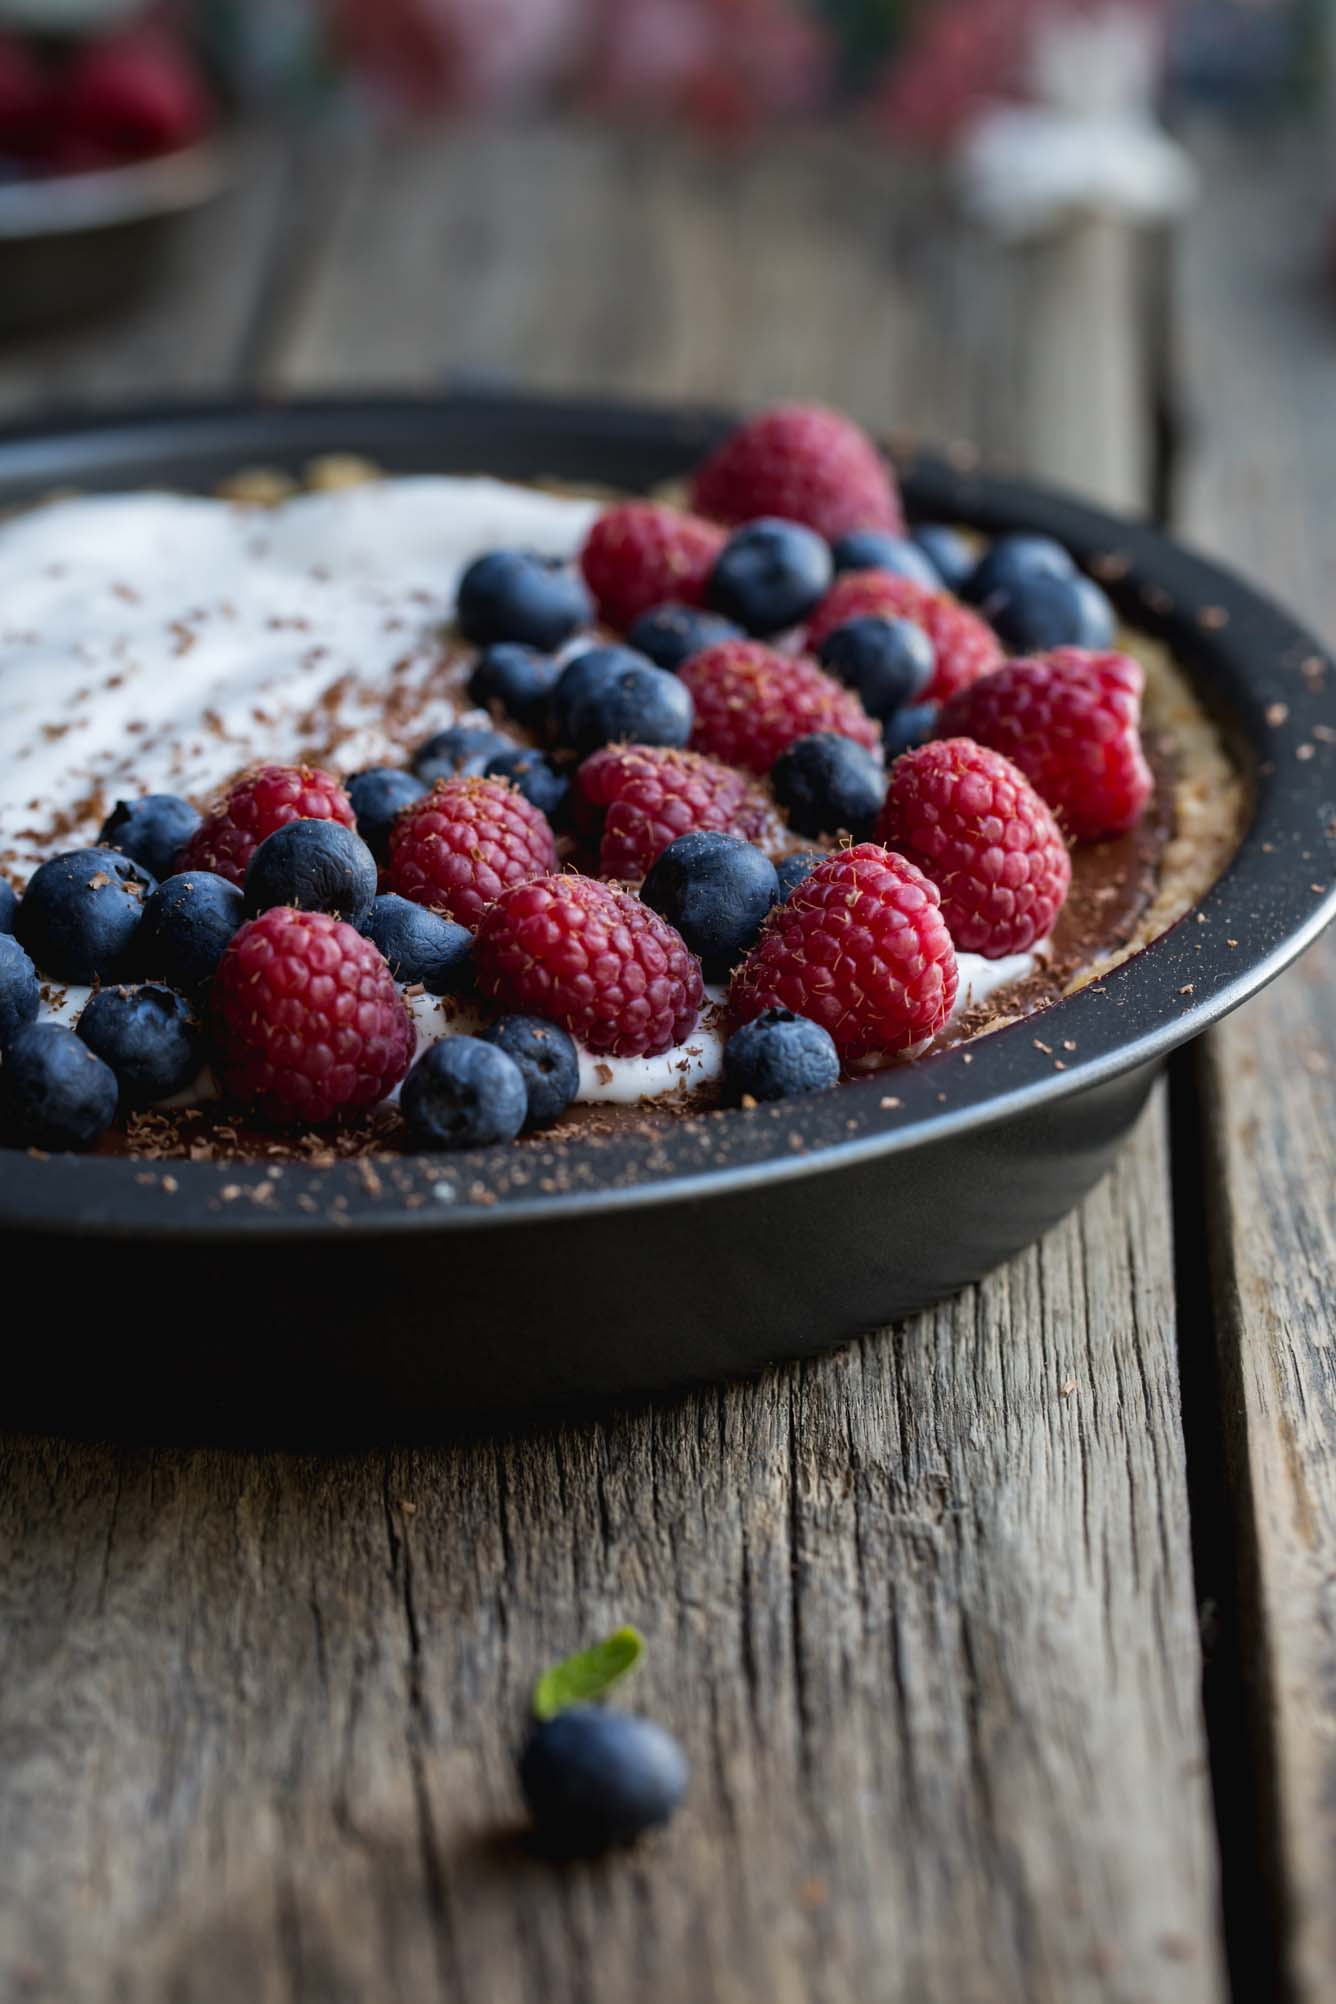 A close up image of a chocolate pie with cream and berries on a wooden bench.